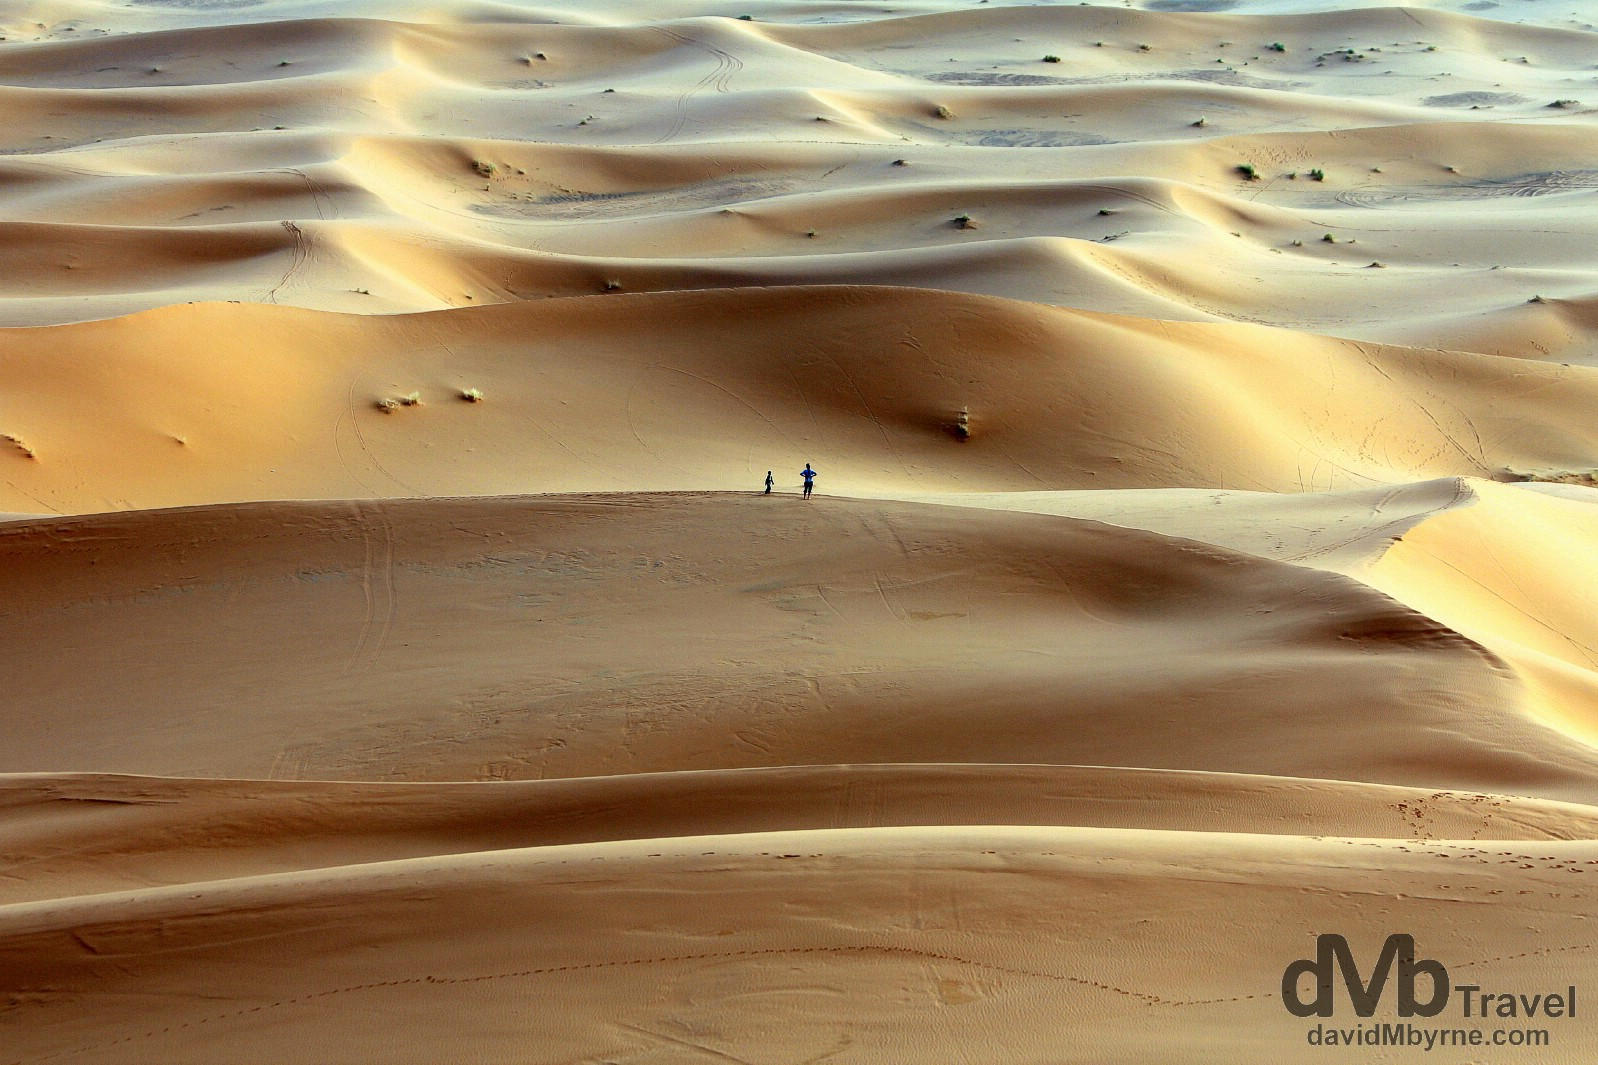 Walking on the sand dunes of Erg Chebbi outside the village of Merzouga, Morocco. May 19th, 2014.